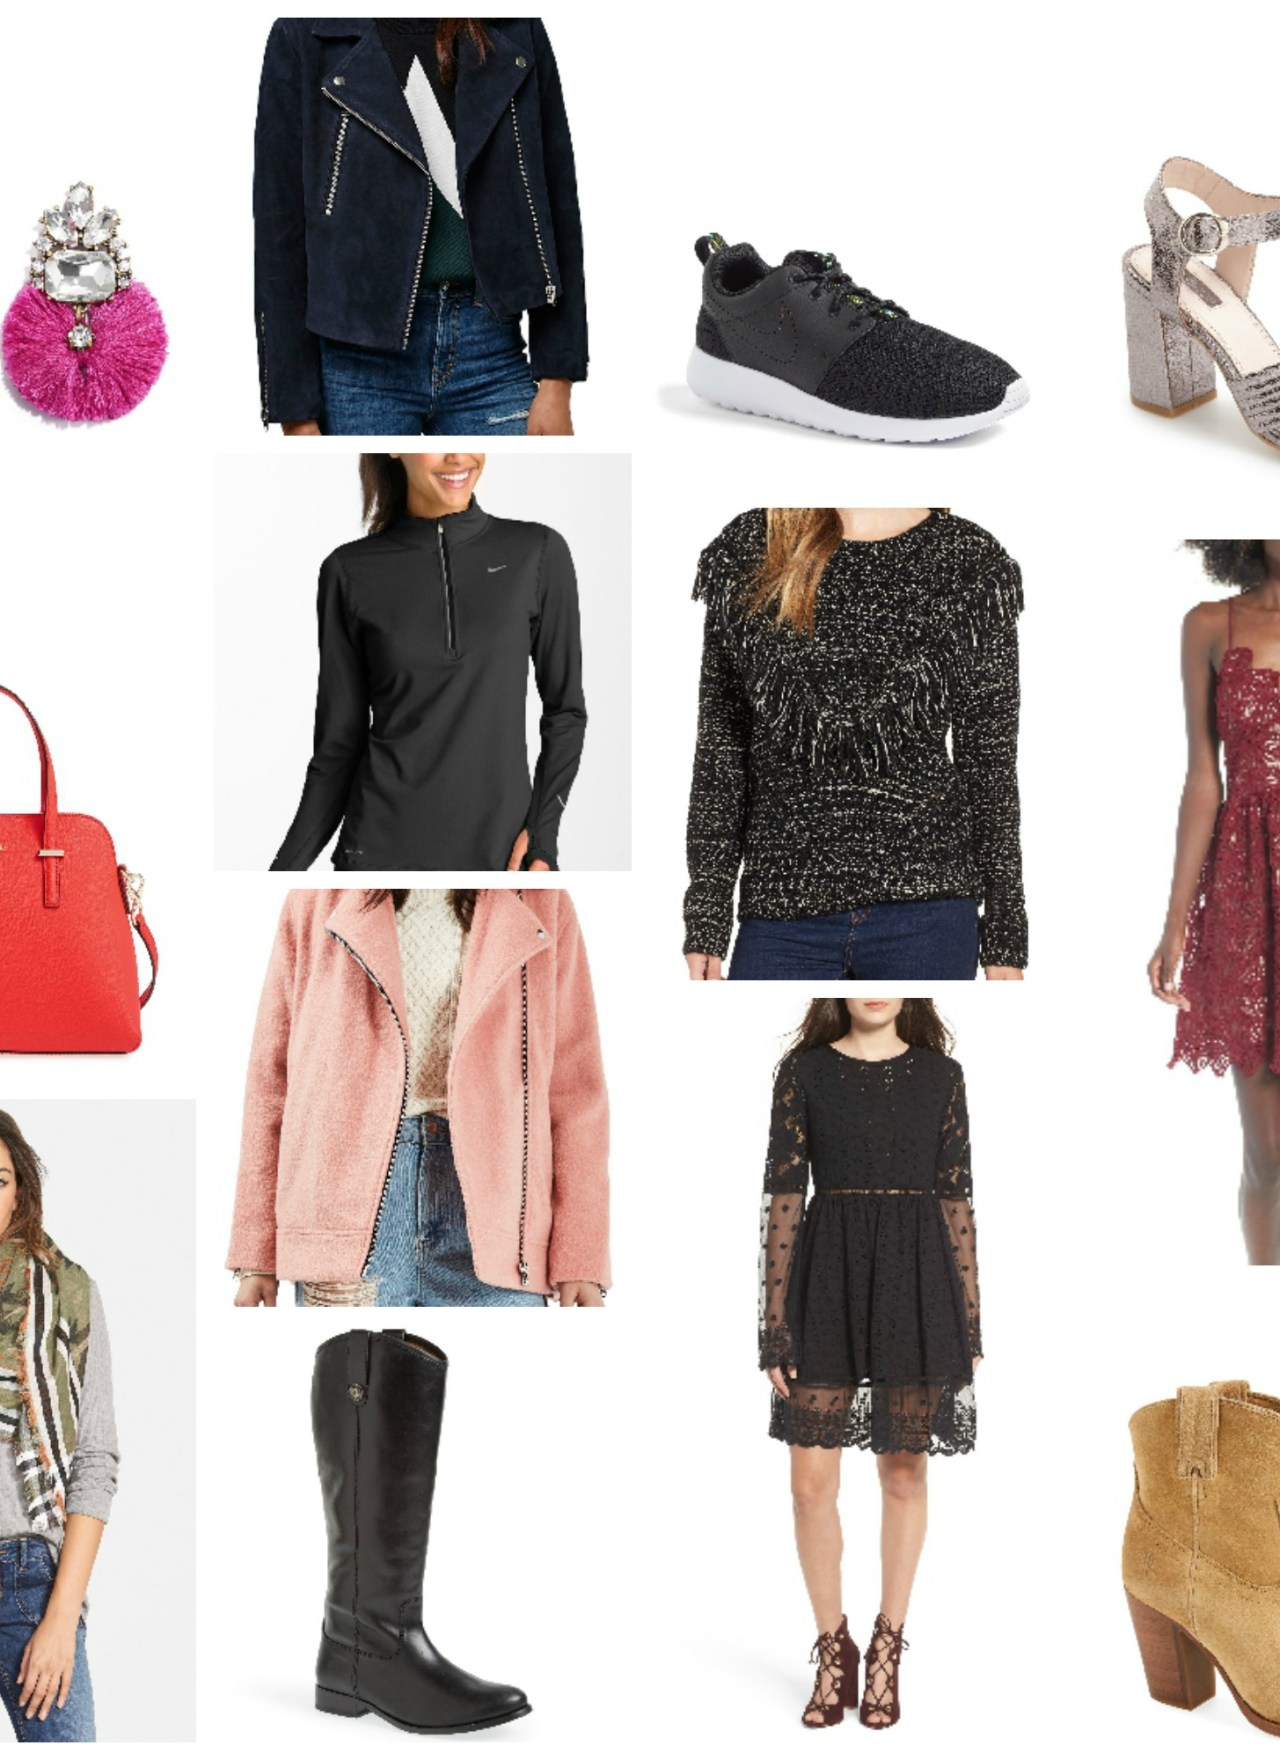 Nordstrom Half-Yearly